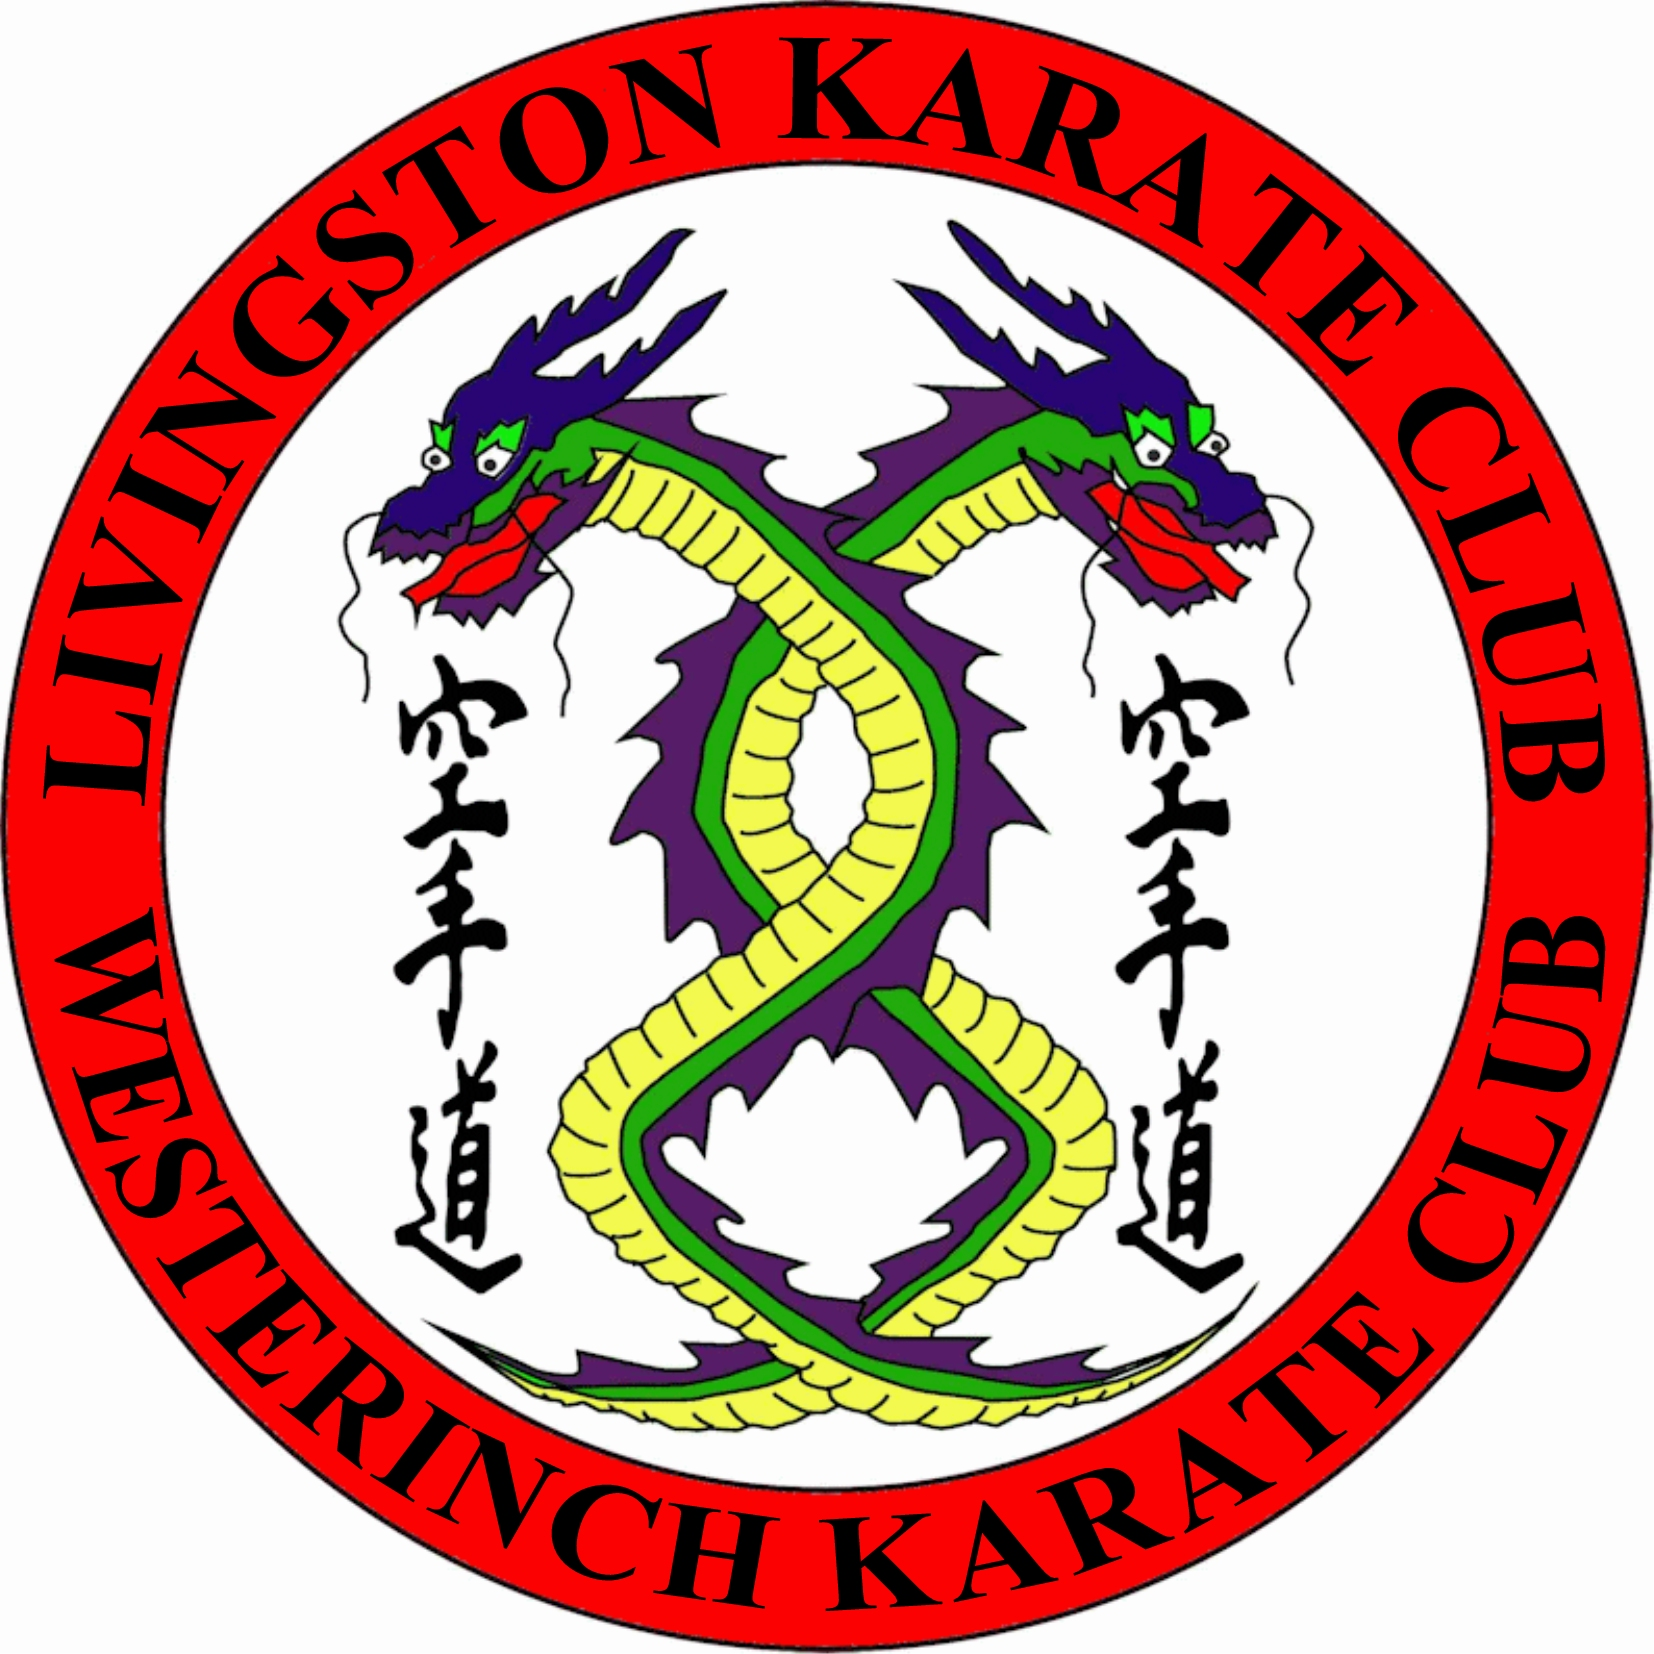 Westerinch Karate Club Logo